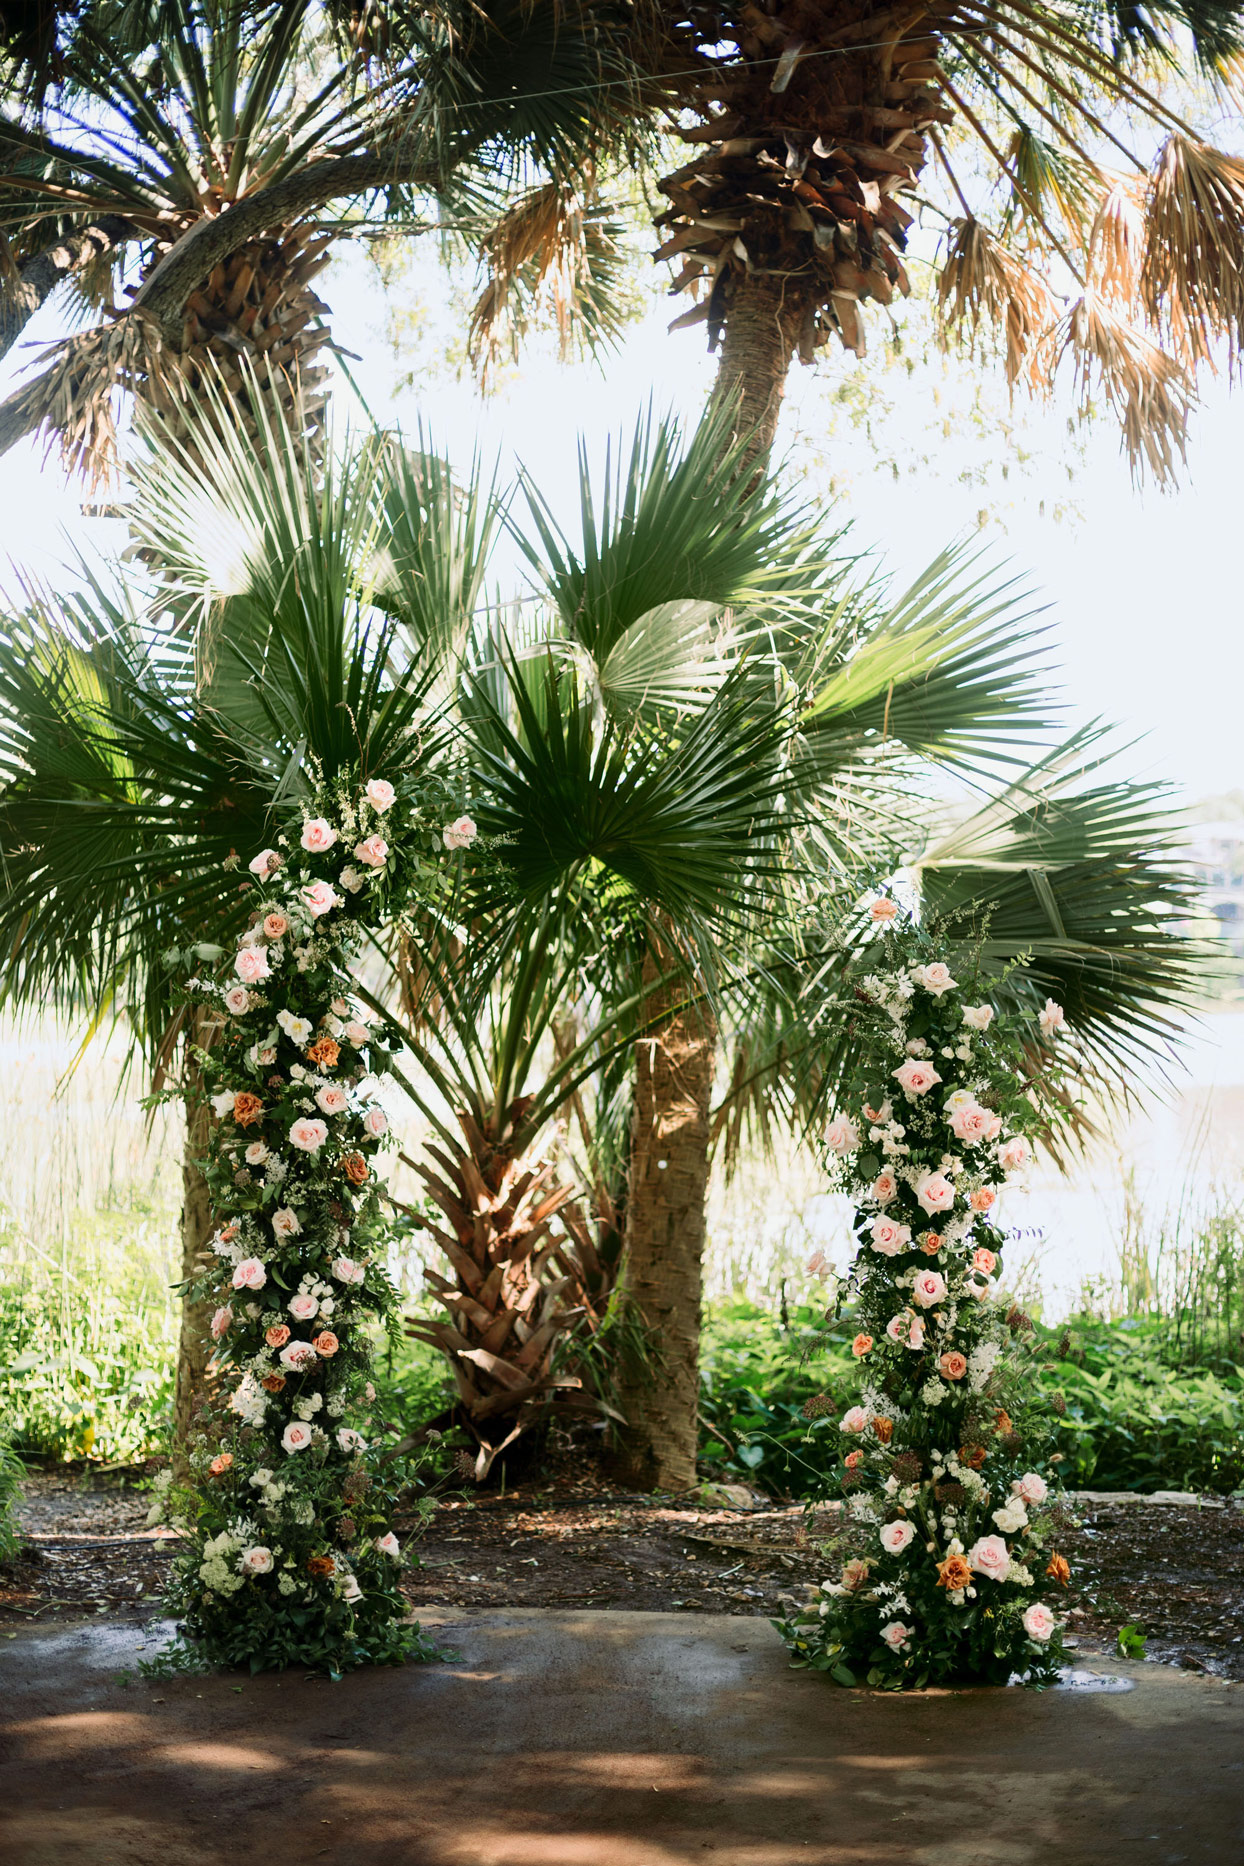 Palm trees decorated with flowers